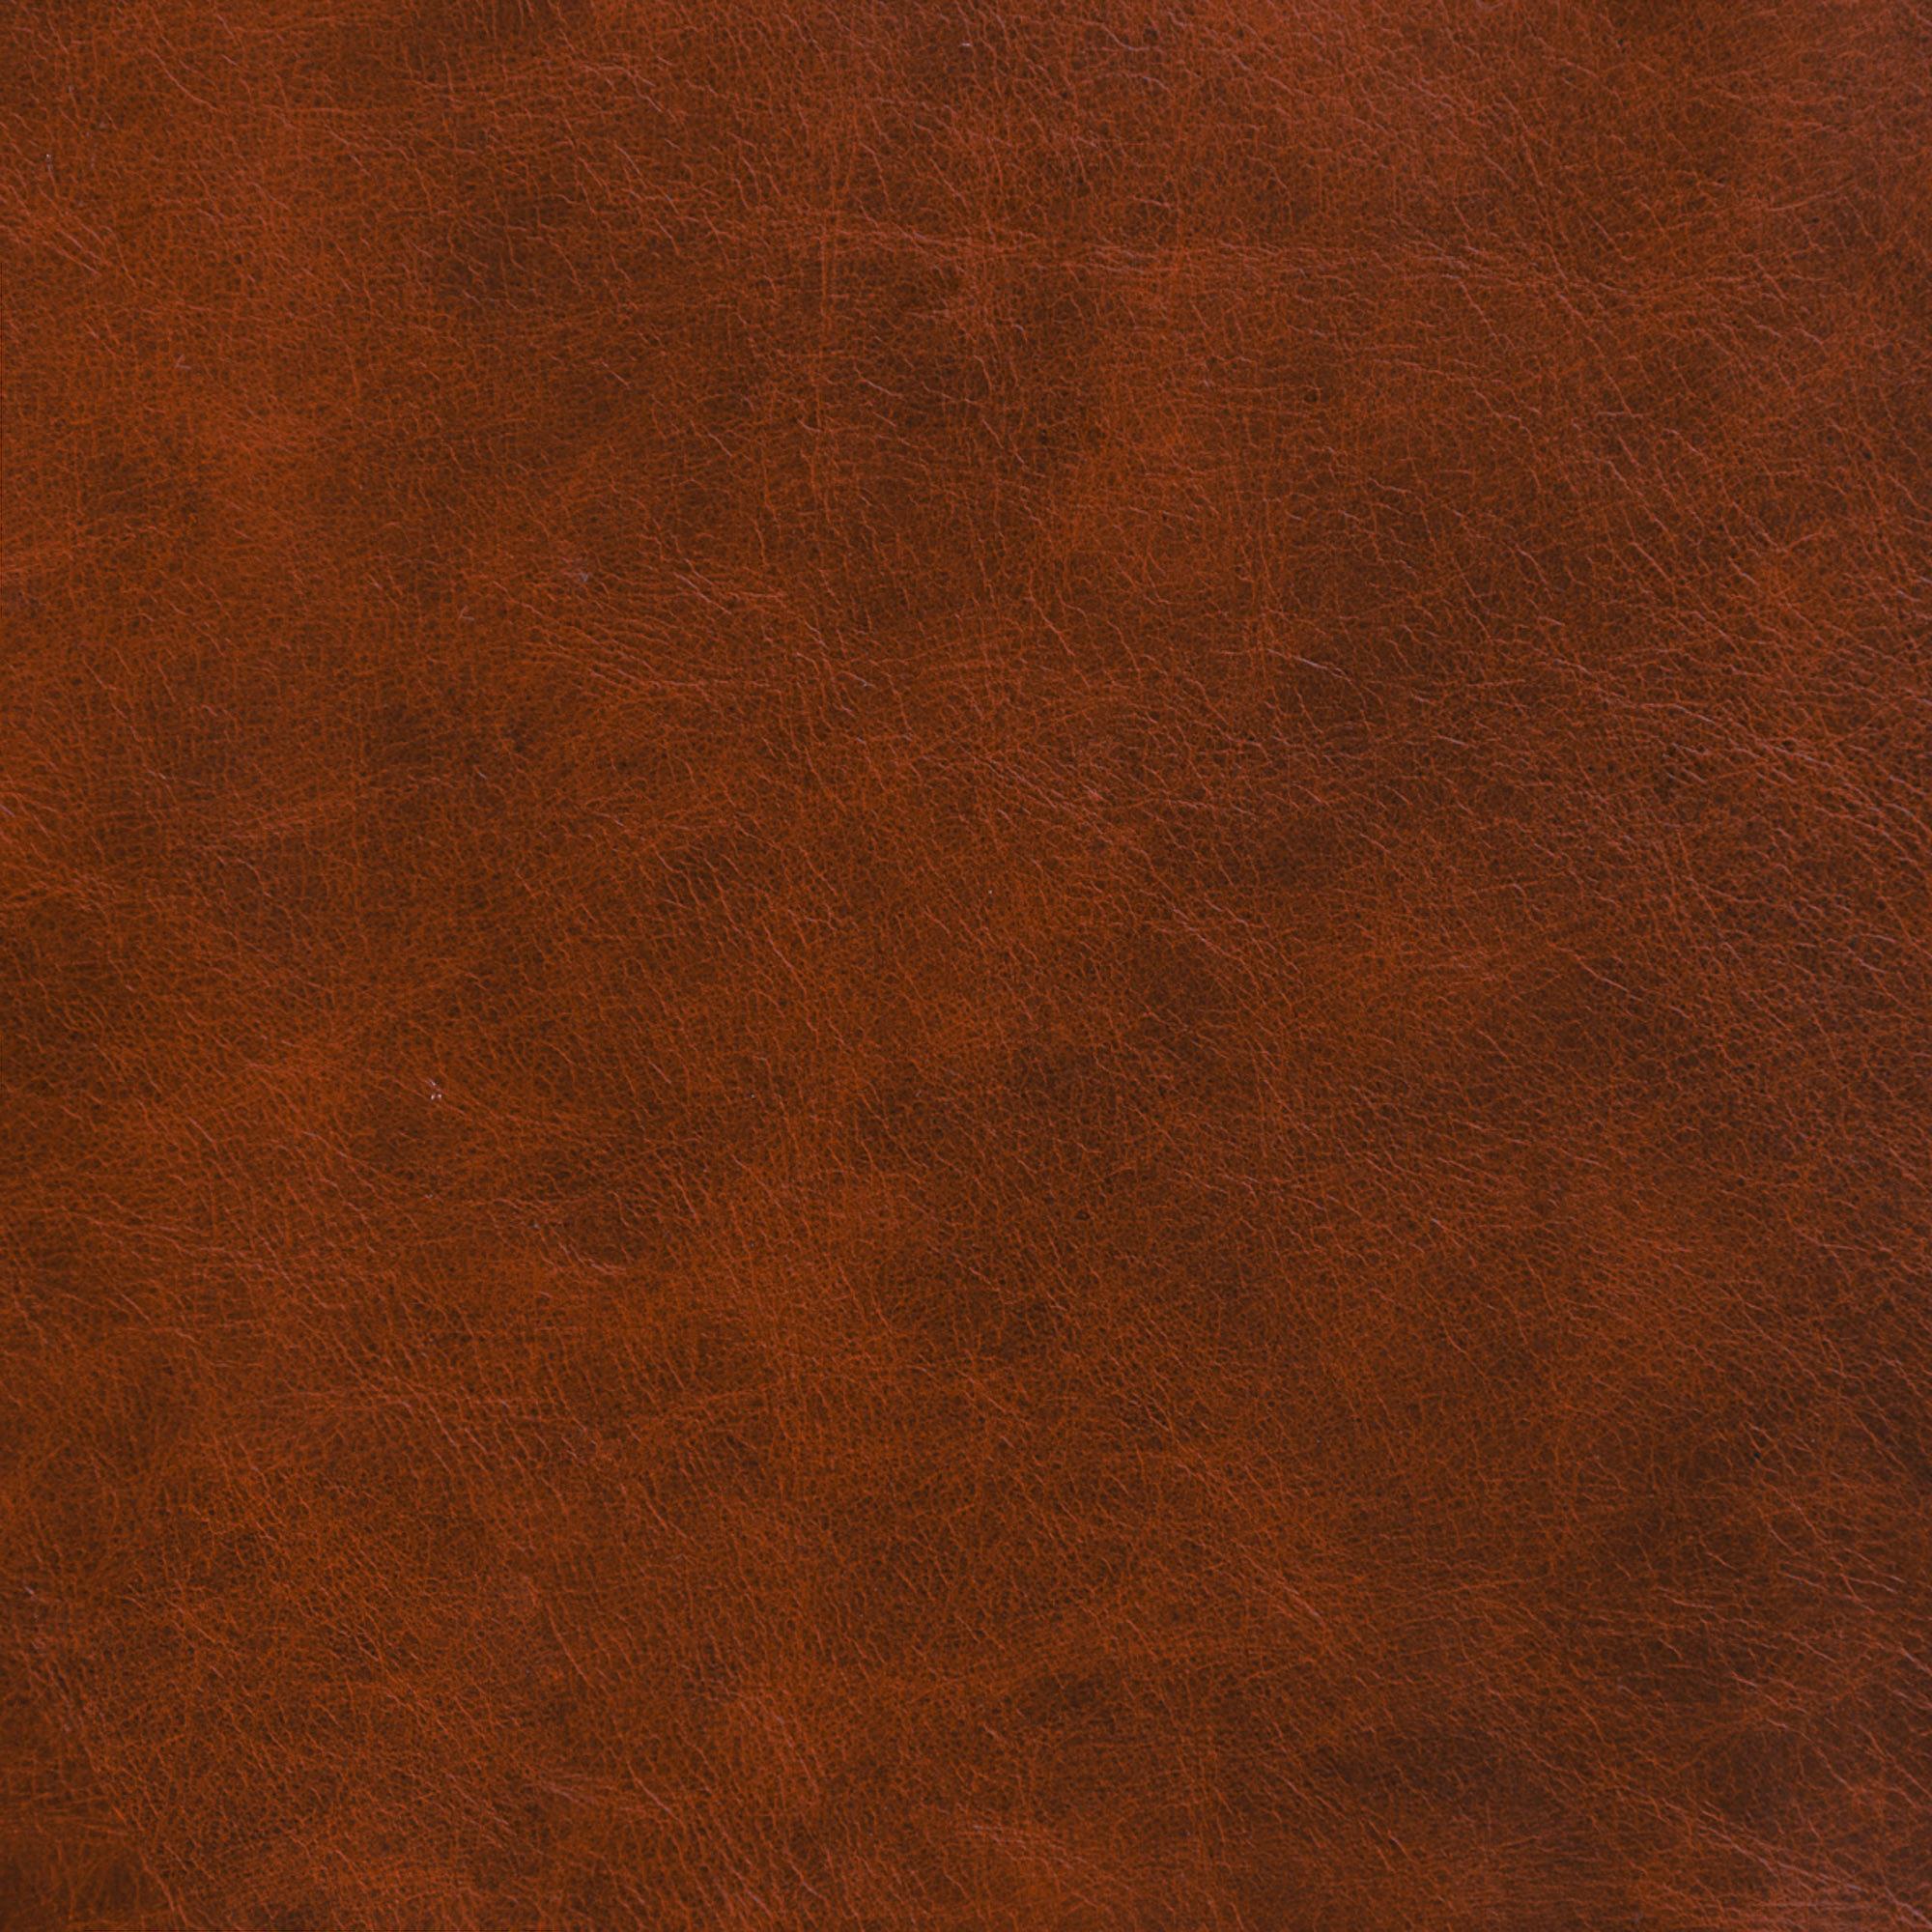 Whiskey Leather Swatch